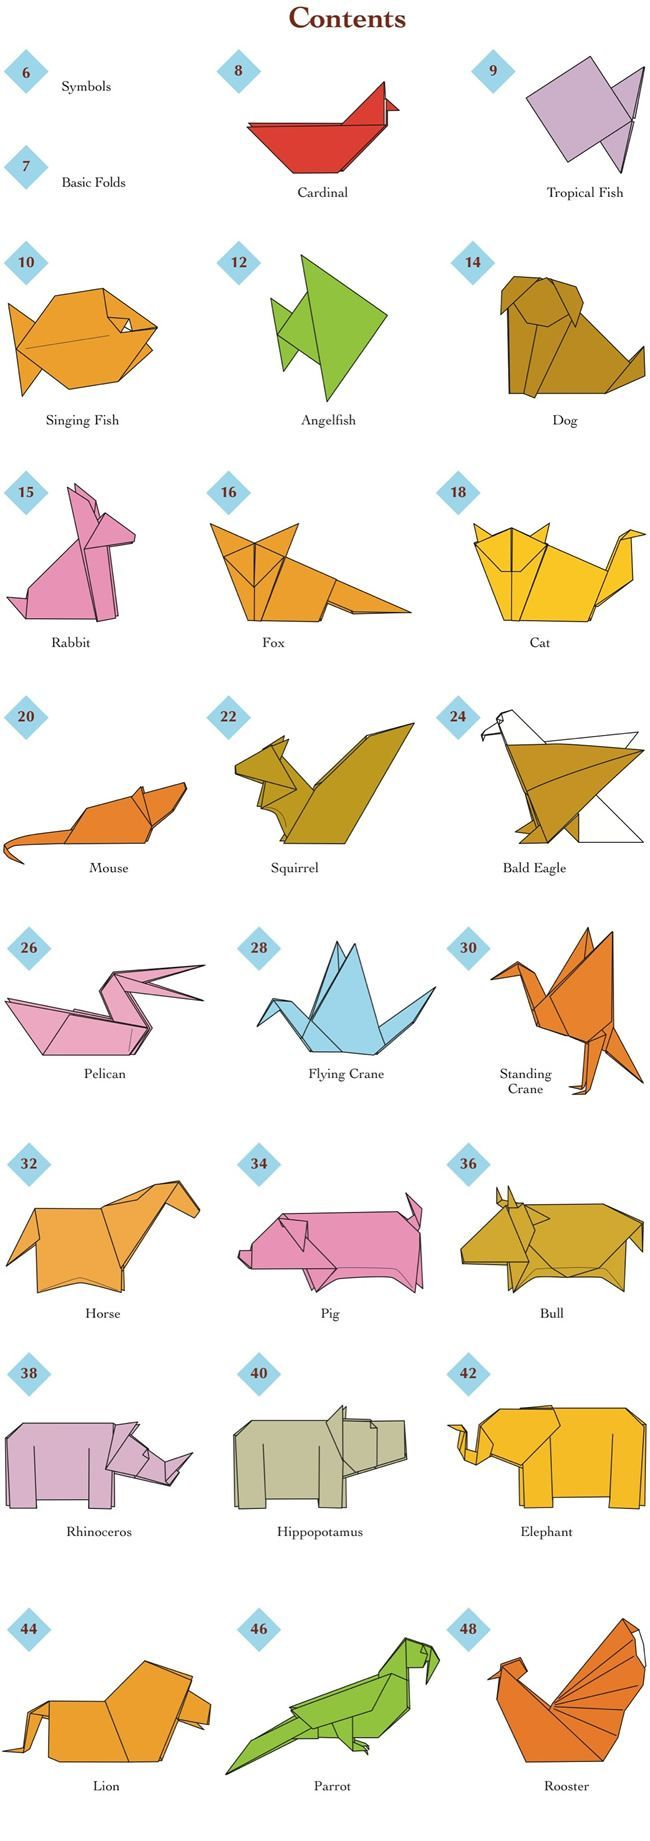 16 best easy origami for kids and beginners images on pinterest easy origami animals page 2 of 6 contents jeuxipadfo Images